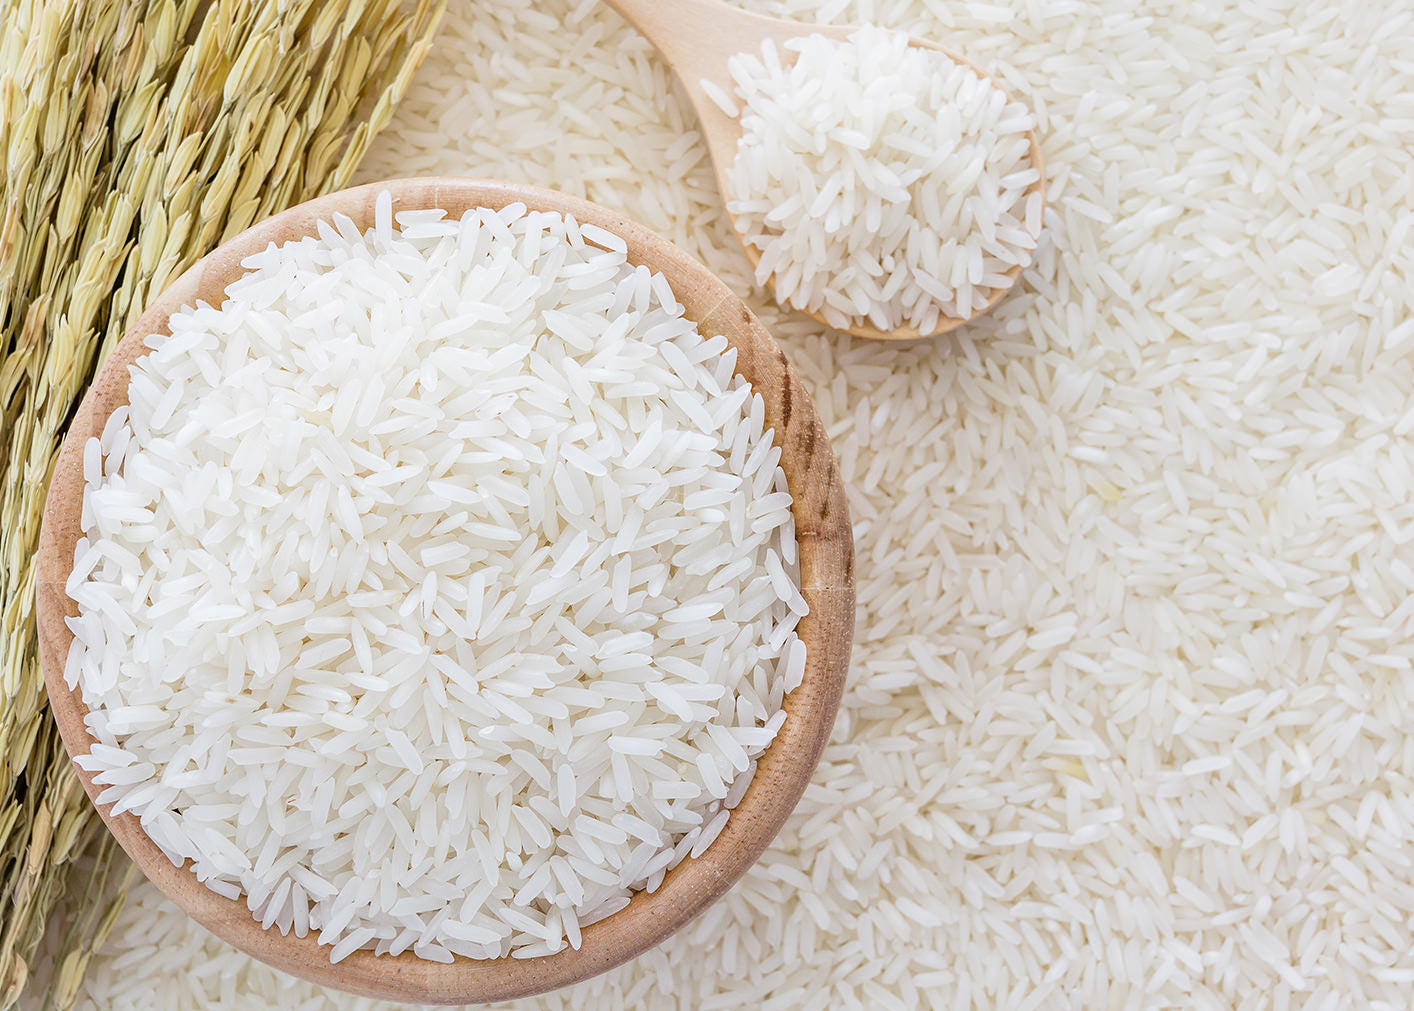 Commercial Rice